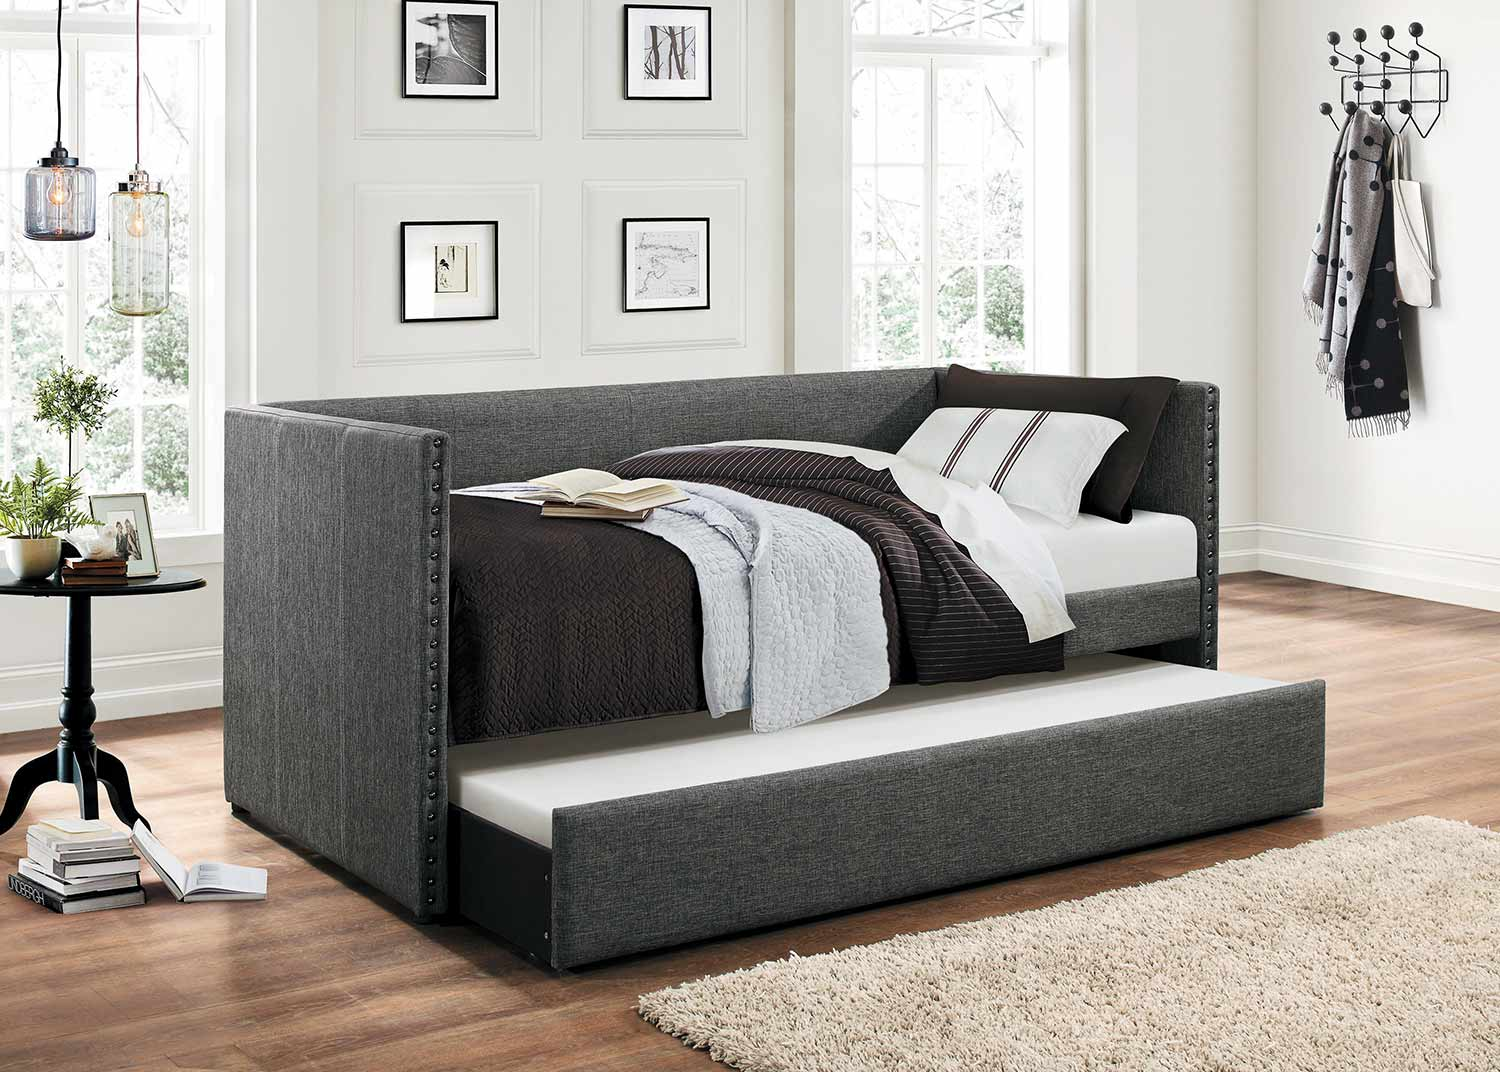 Homelegance Therese Upholstered Daybed with Trundle - Grey